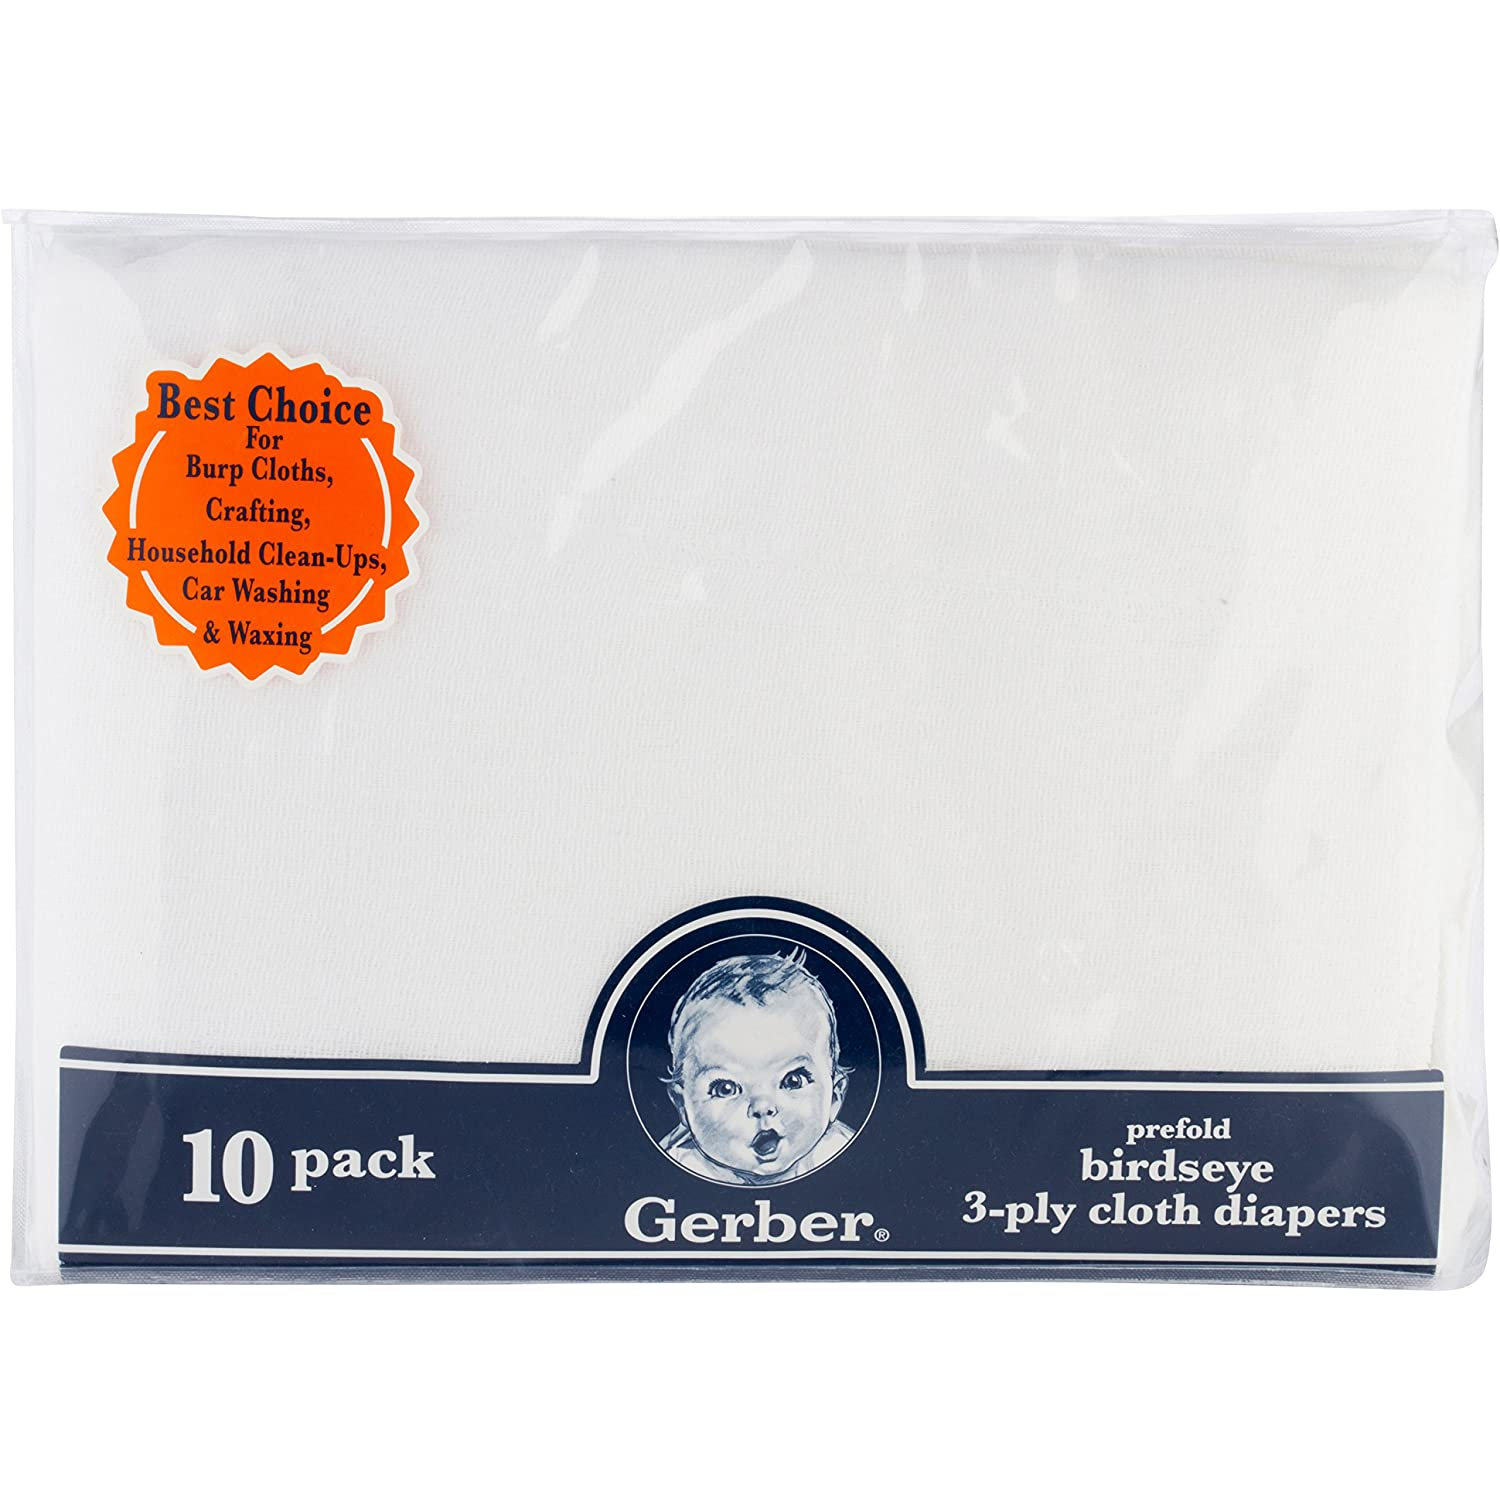 Gerber Birdseye 3-Ply Prefold Cloth Diapers White 10 Count